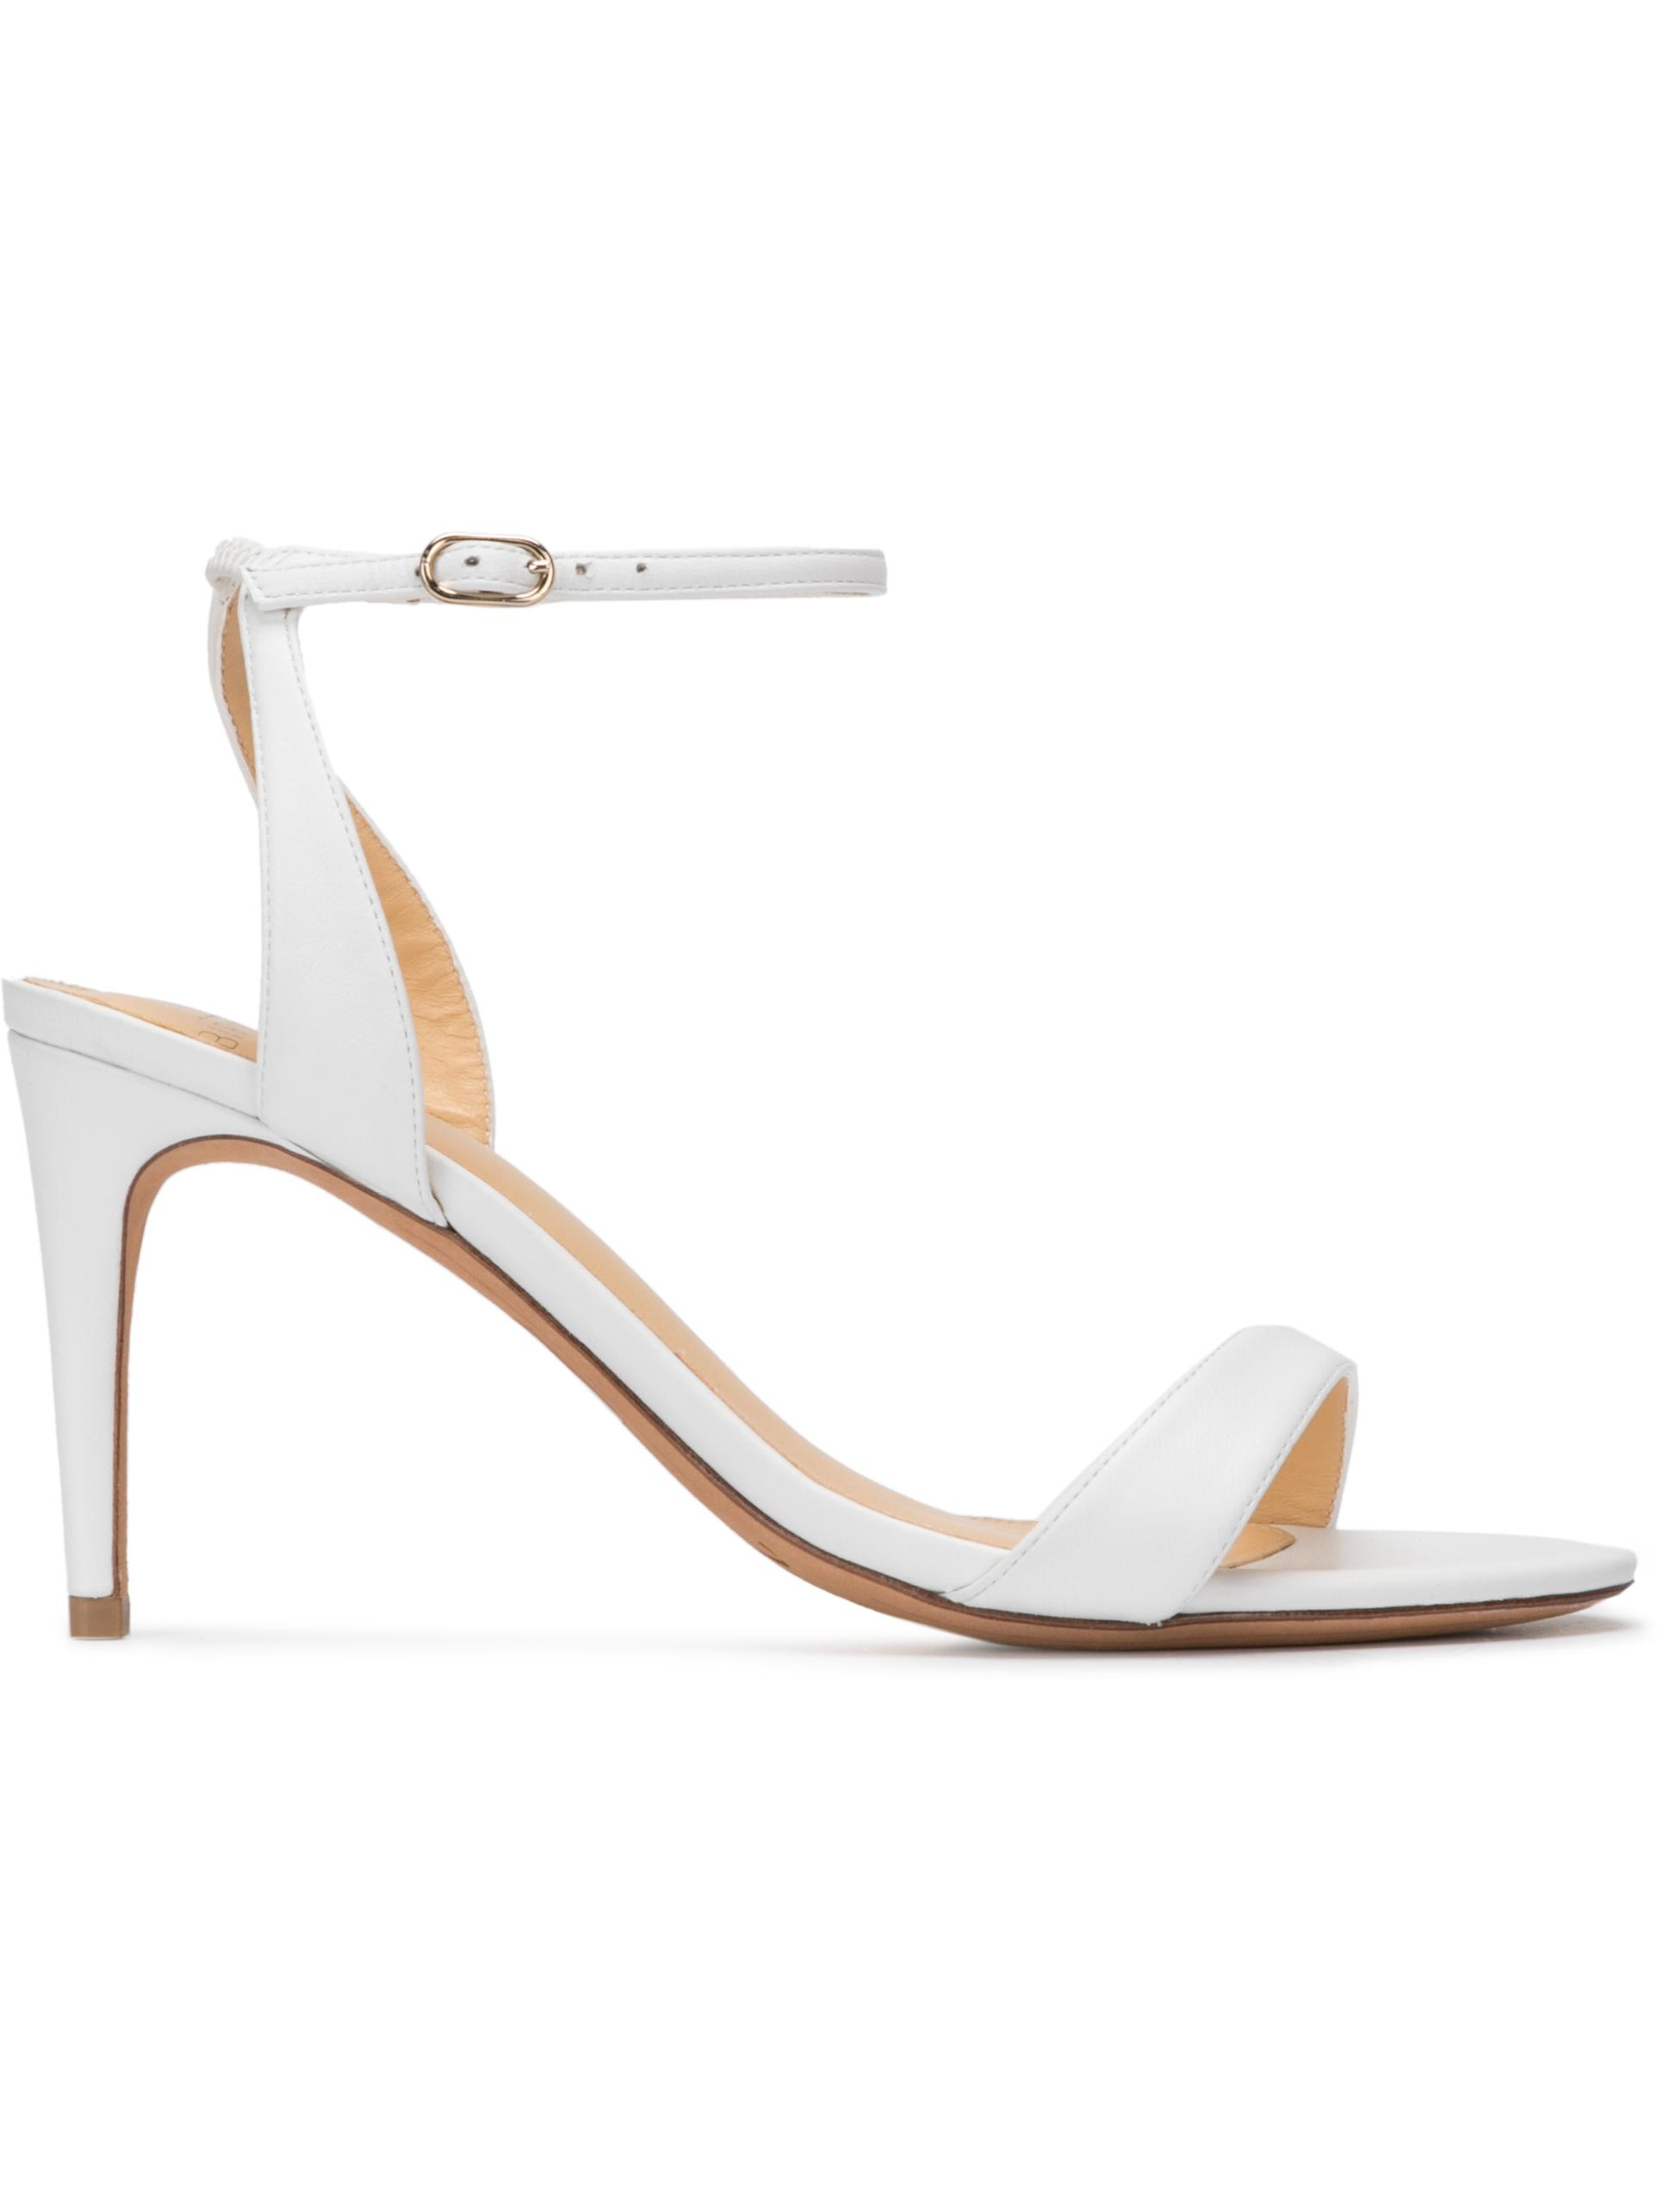 Willow 75mm Leather Ankle Strap Sandal